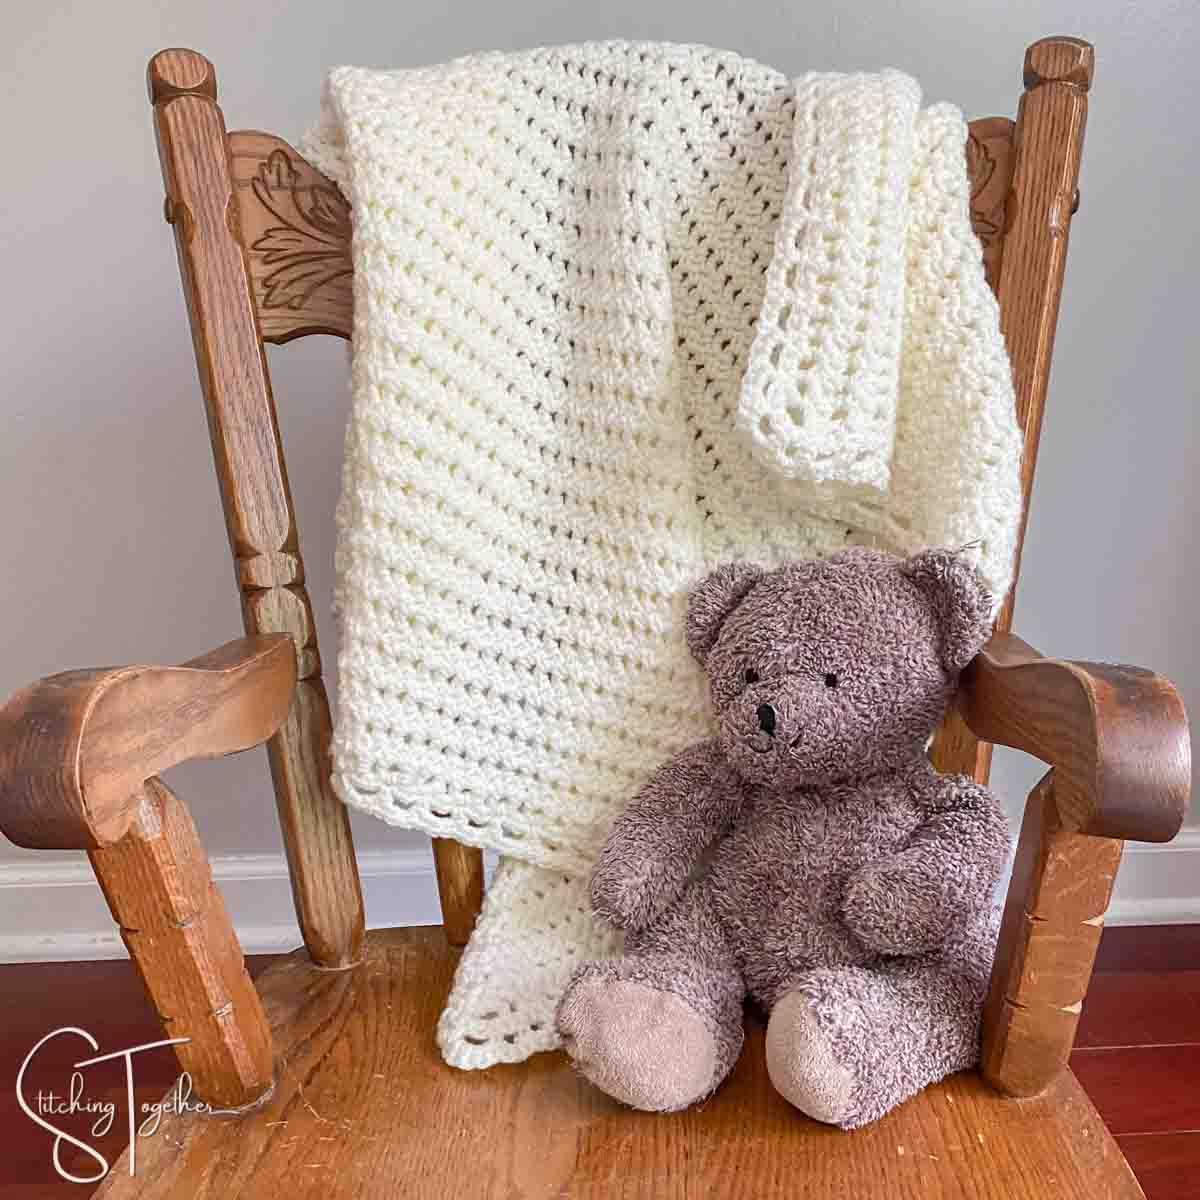 crochet lacy baby blanket draped on chair with stuffed bear next to it